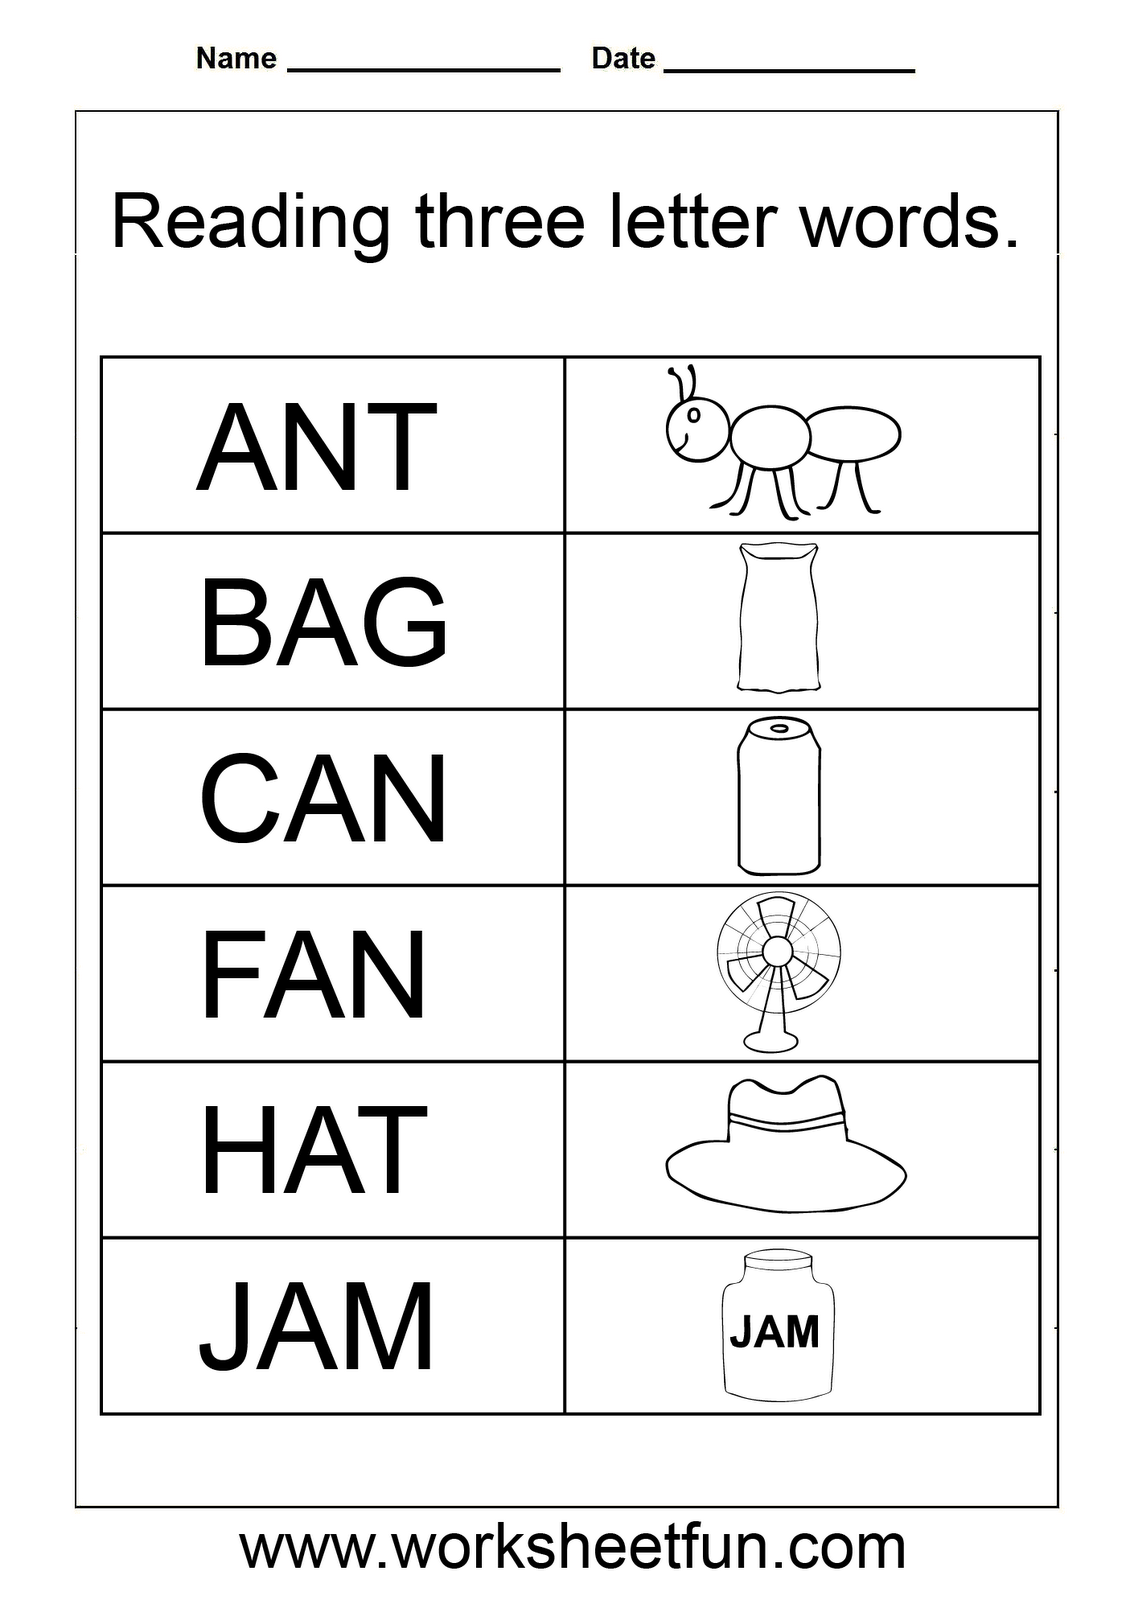 3 letter words worksheets kindergarten class ideas lessons ...